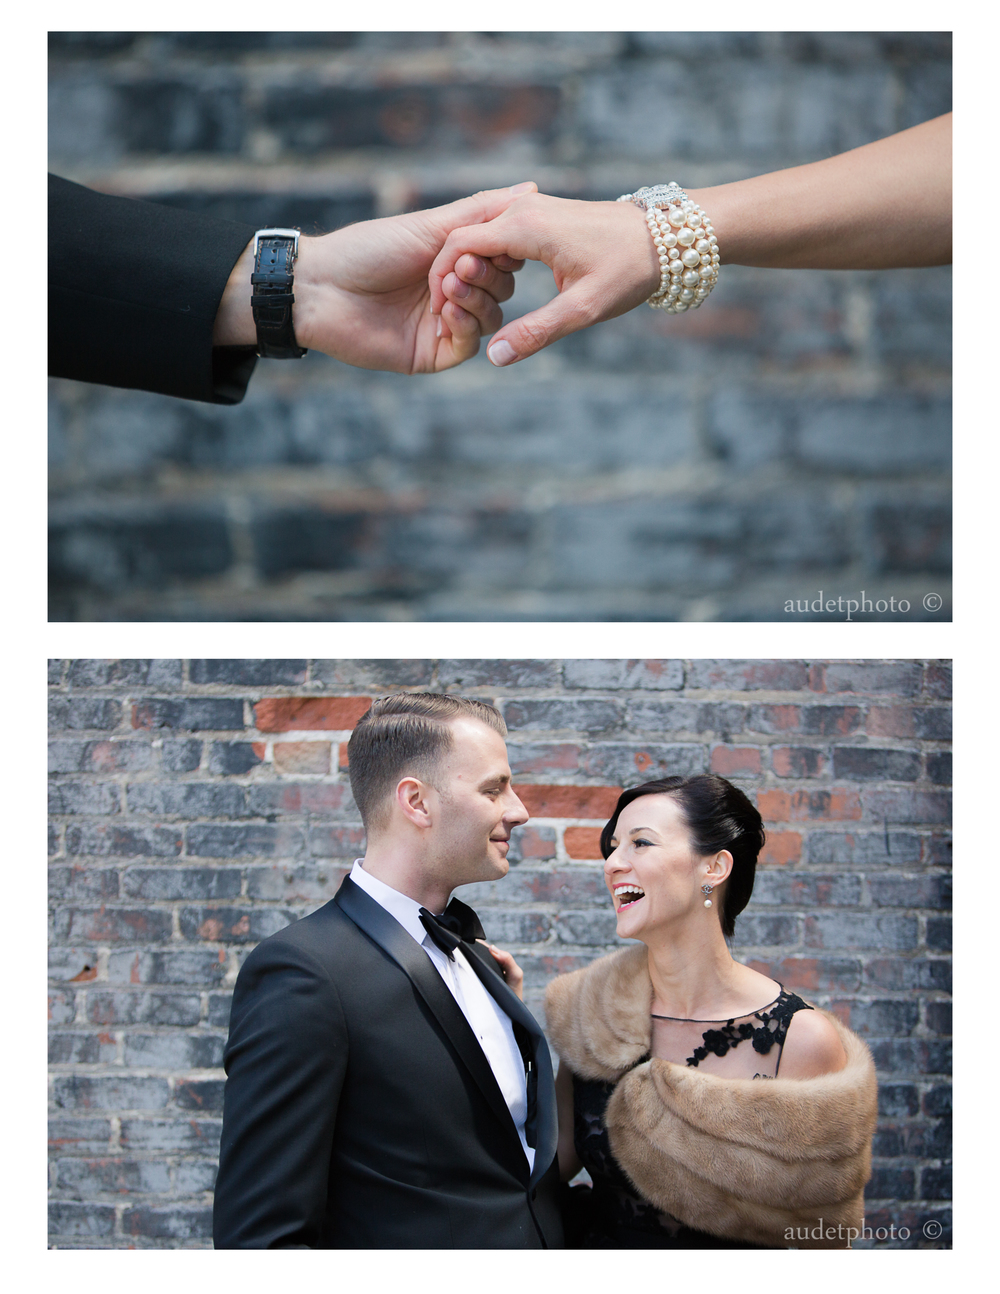 audetphoto_mariage_quebec_amedave_05